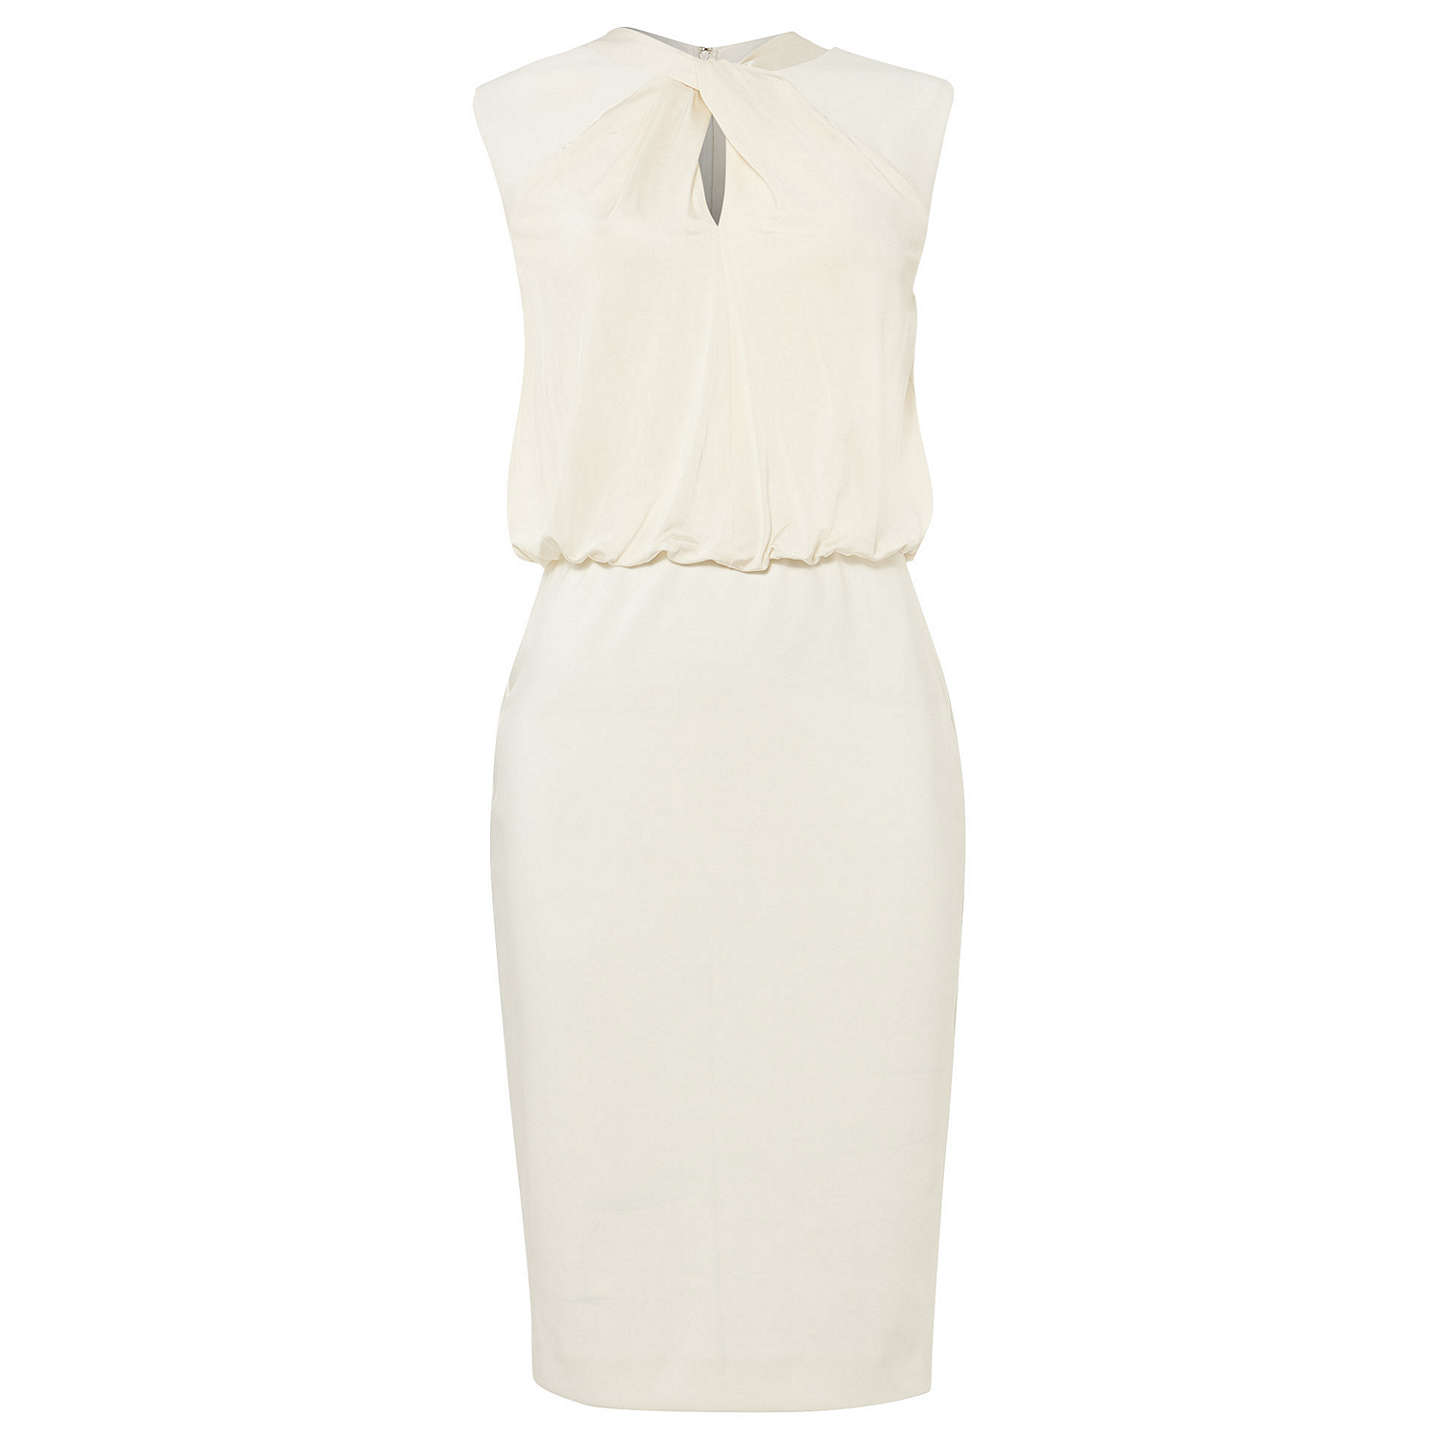 BuyDamsel in a dress Wisdom Twist Dress, Ivory, 16 Online at johnlewis.com